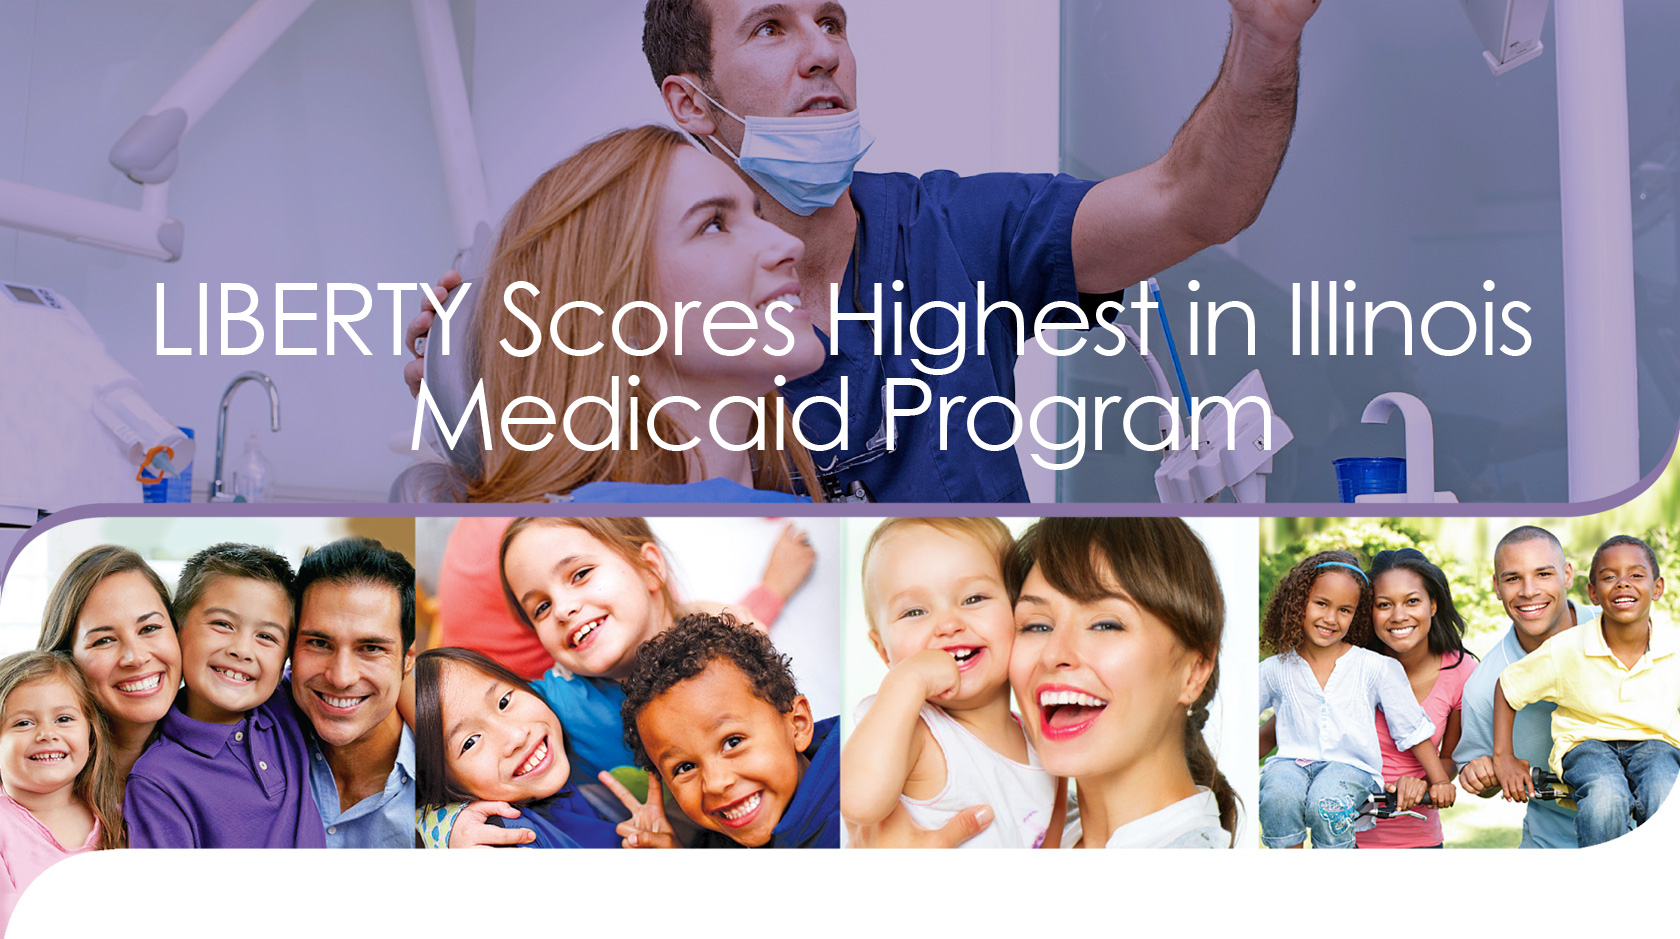 LIBERTY scores highest in IL Medicaid Program